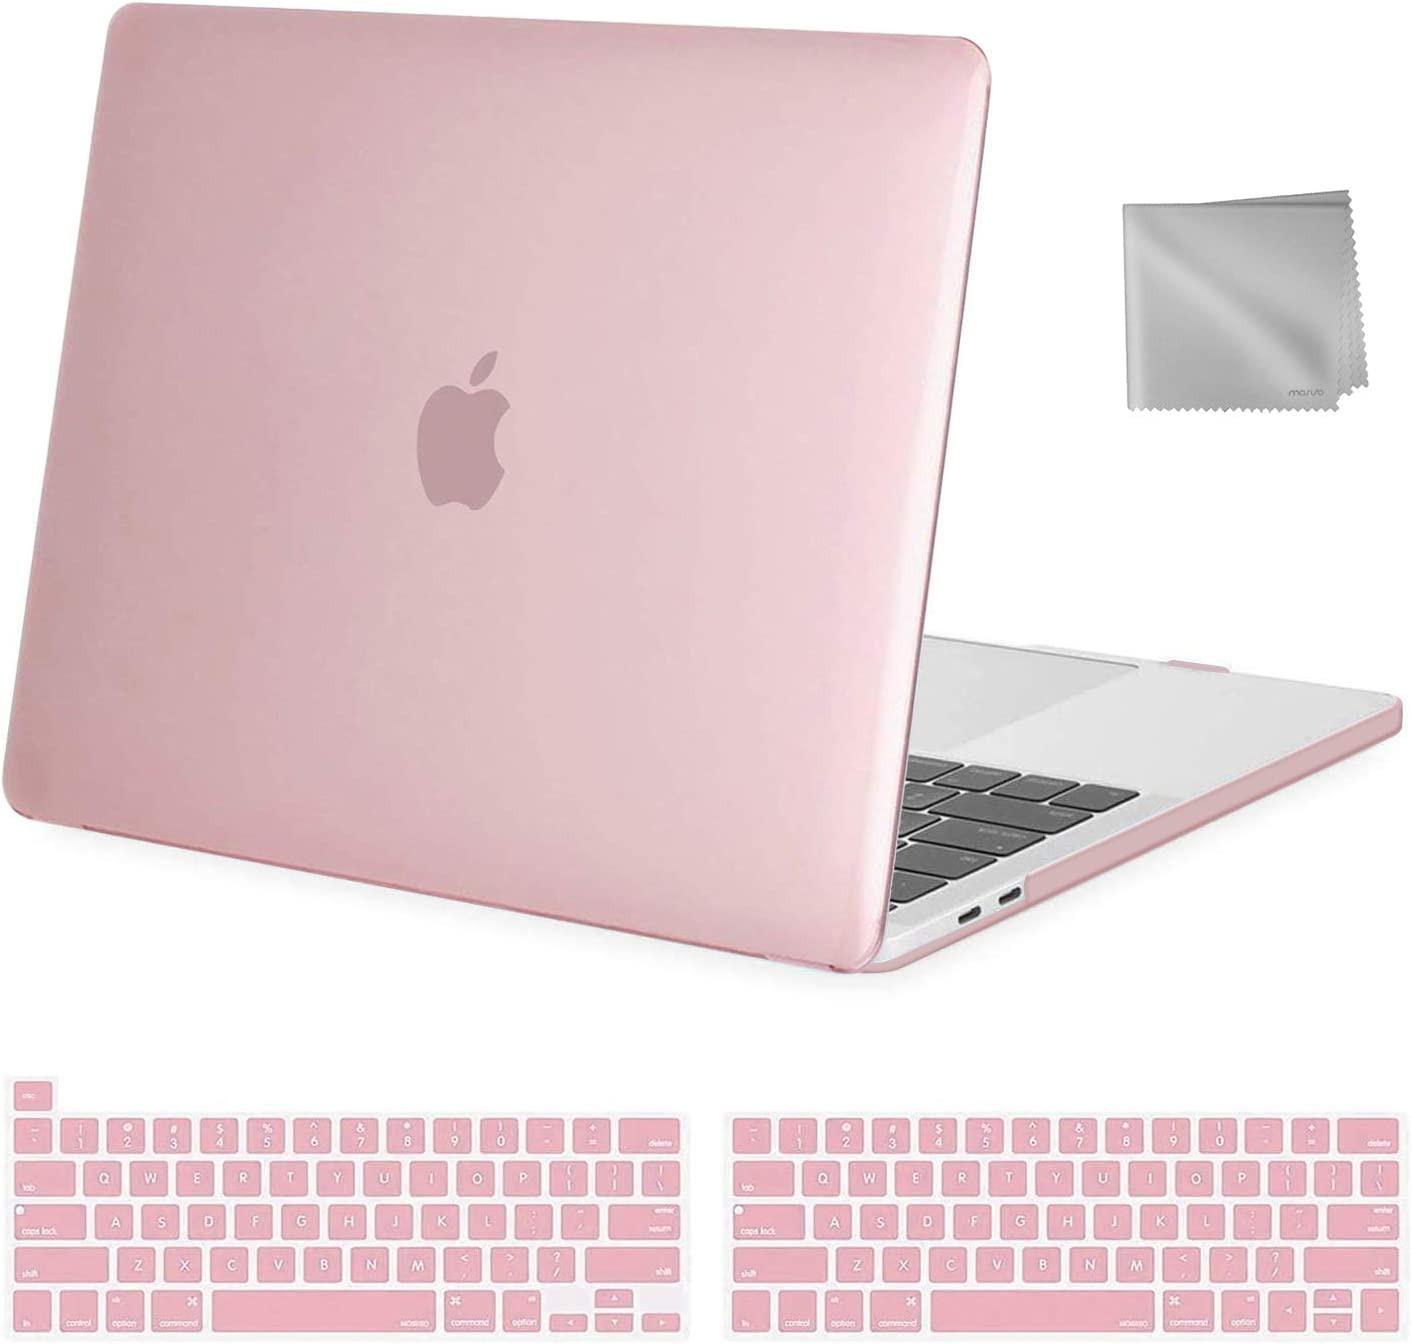 Plastic Hard Shell Case/&Keyboard Cover/&Wipe Cloth Compatible with MacBook Pro 13 inch Living Coral MOSISO MacBook Pro 13 inch Case 2016-2020 Release A2338 M1 A2289 A2251 A2159 A1989 A1706 A1708